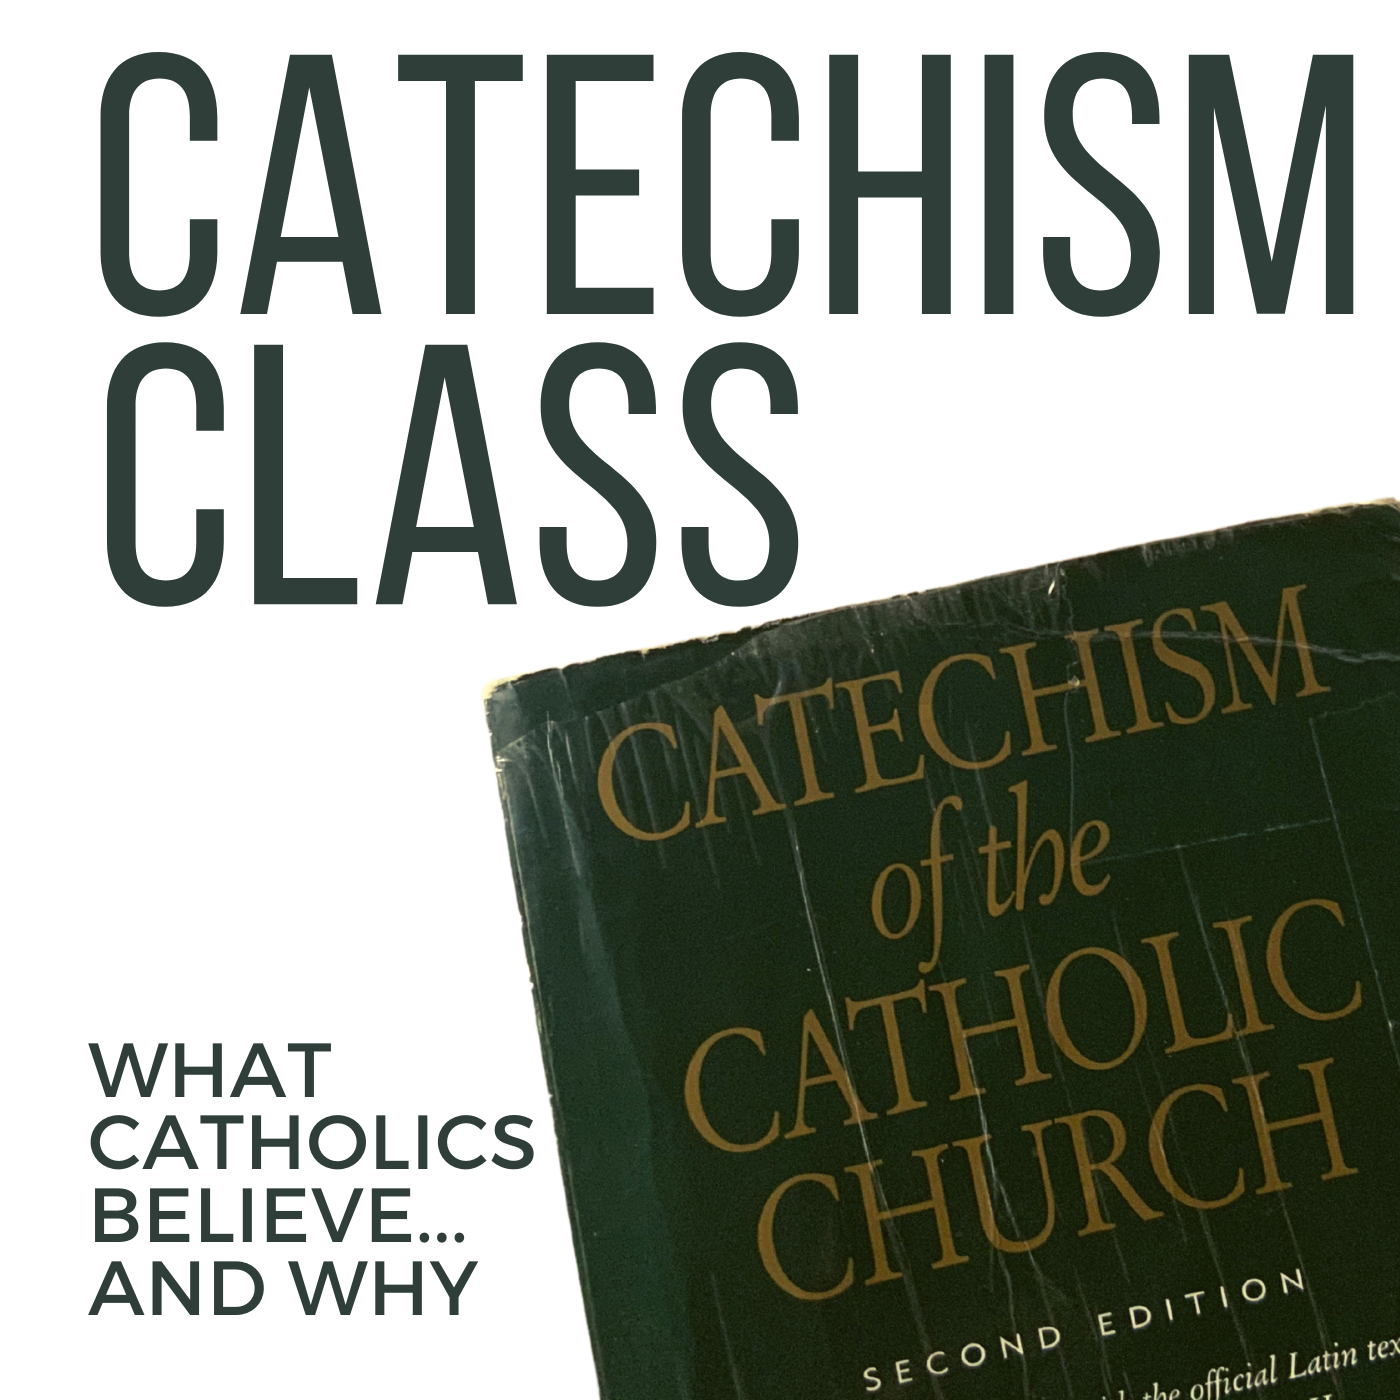 Catechism Class - What Catholics Believe and Why